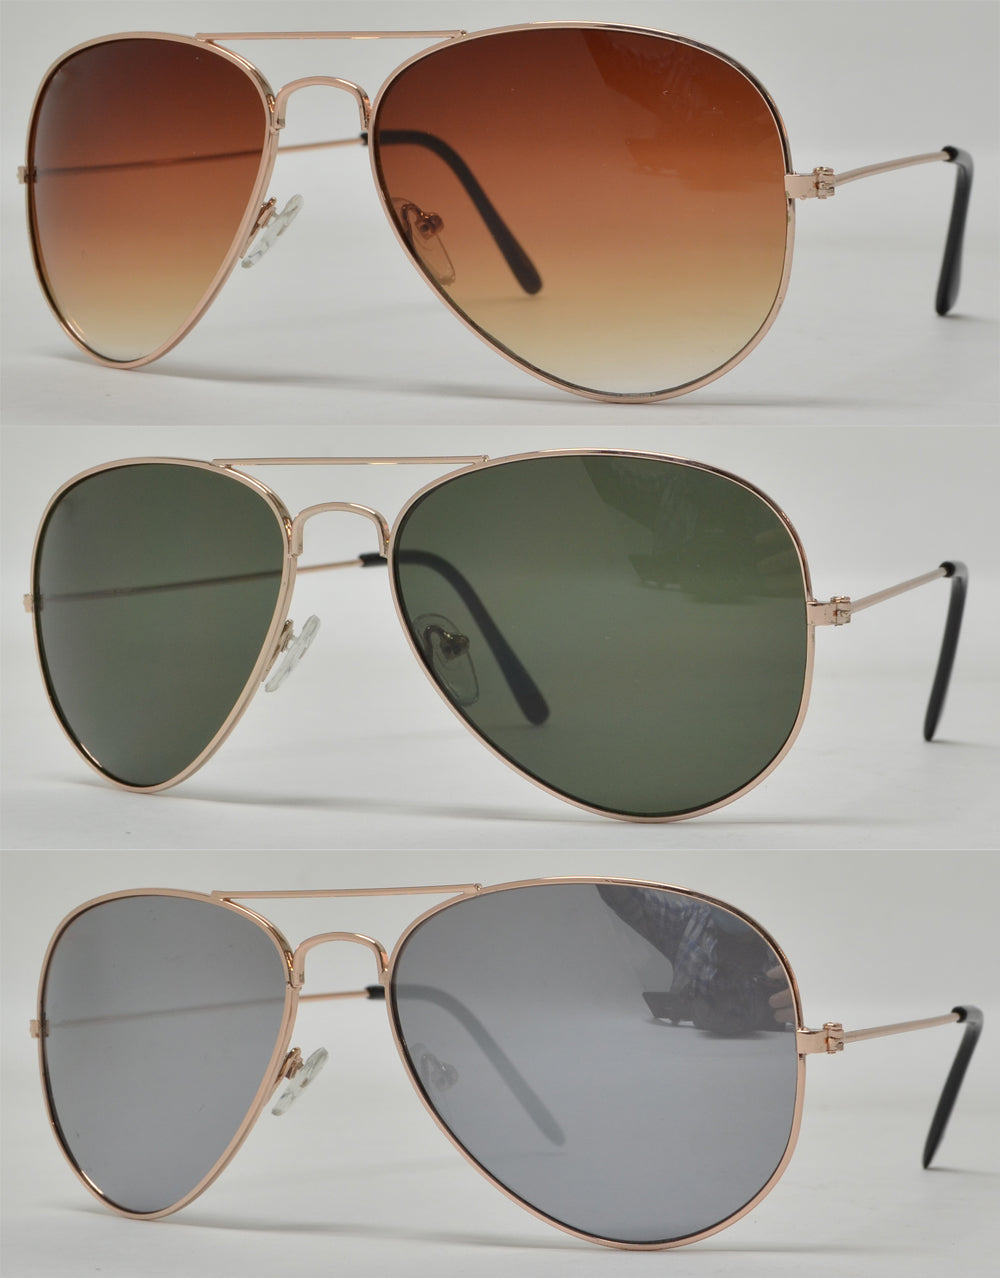 3025 - Classic Metal Aviator Sunglasses